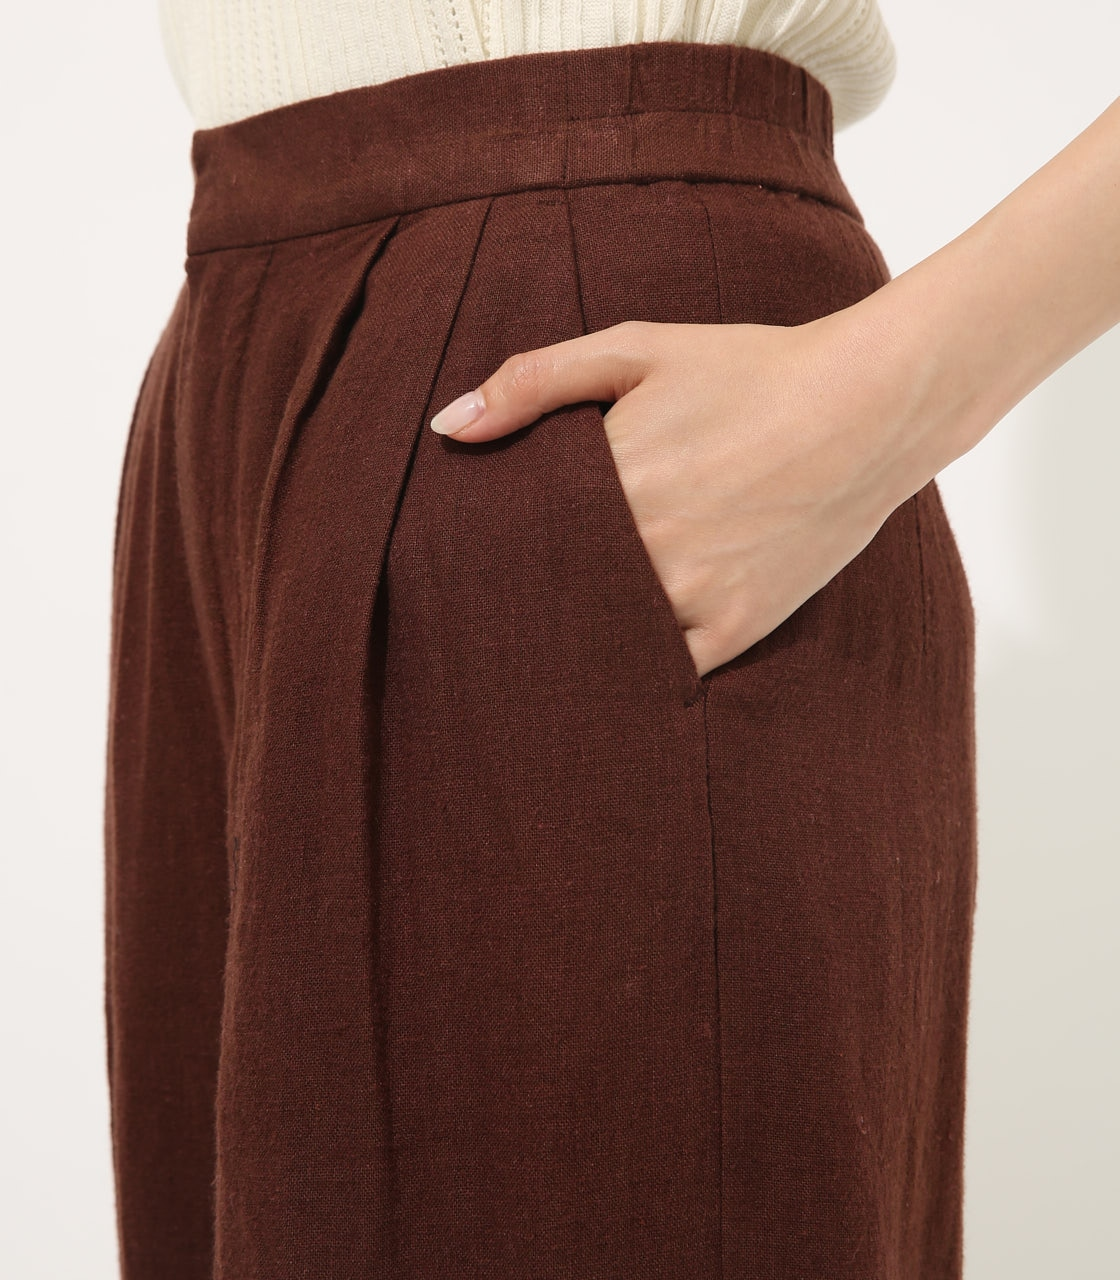 【AZUL BY MOUSSY】COTTON LINEN WIDE PANTS【MOOK50掲載 90131】 詳細画像 BRN 8